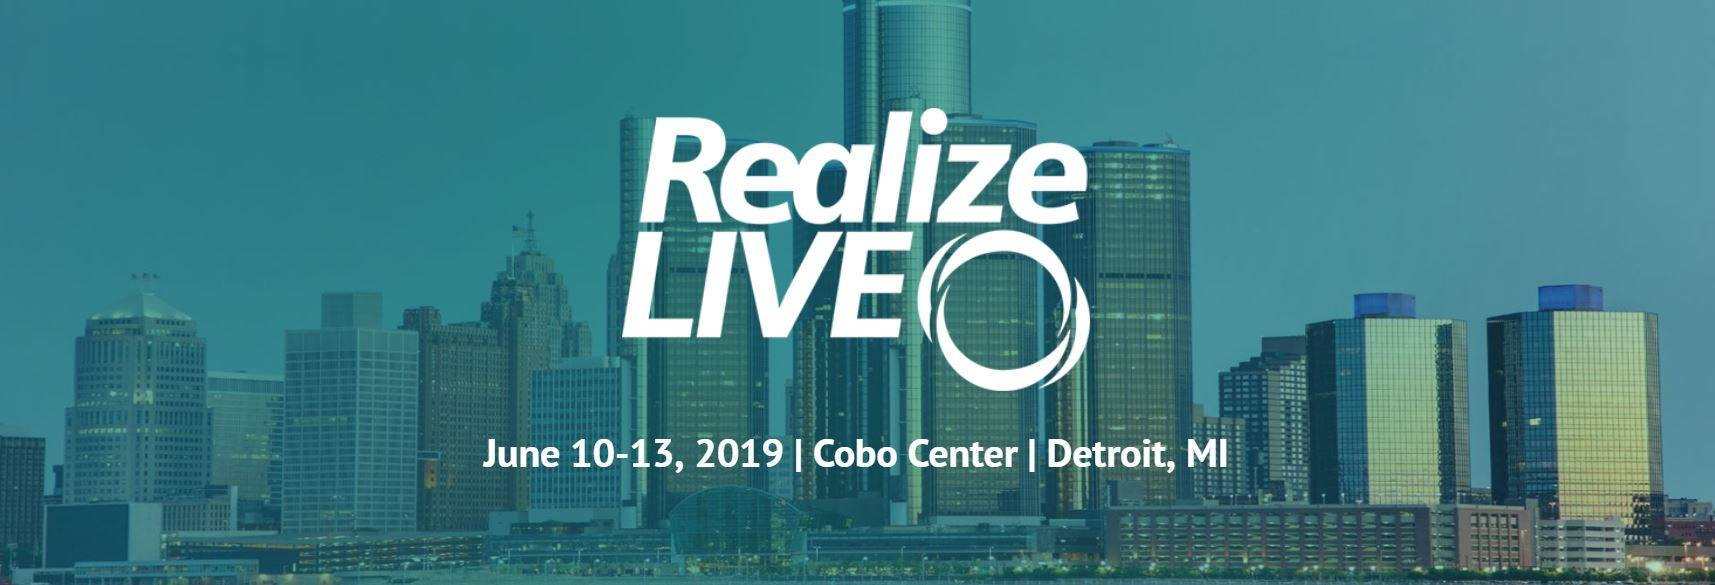 Siemens Realize Live Event_banner